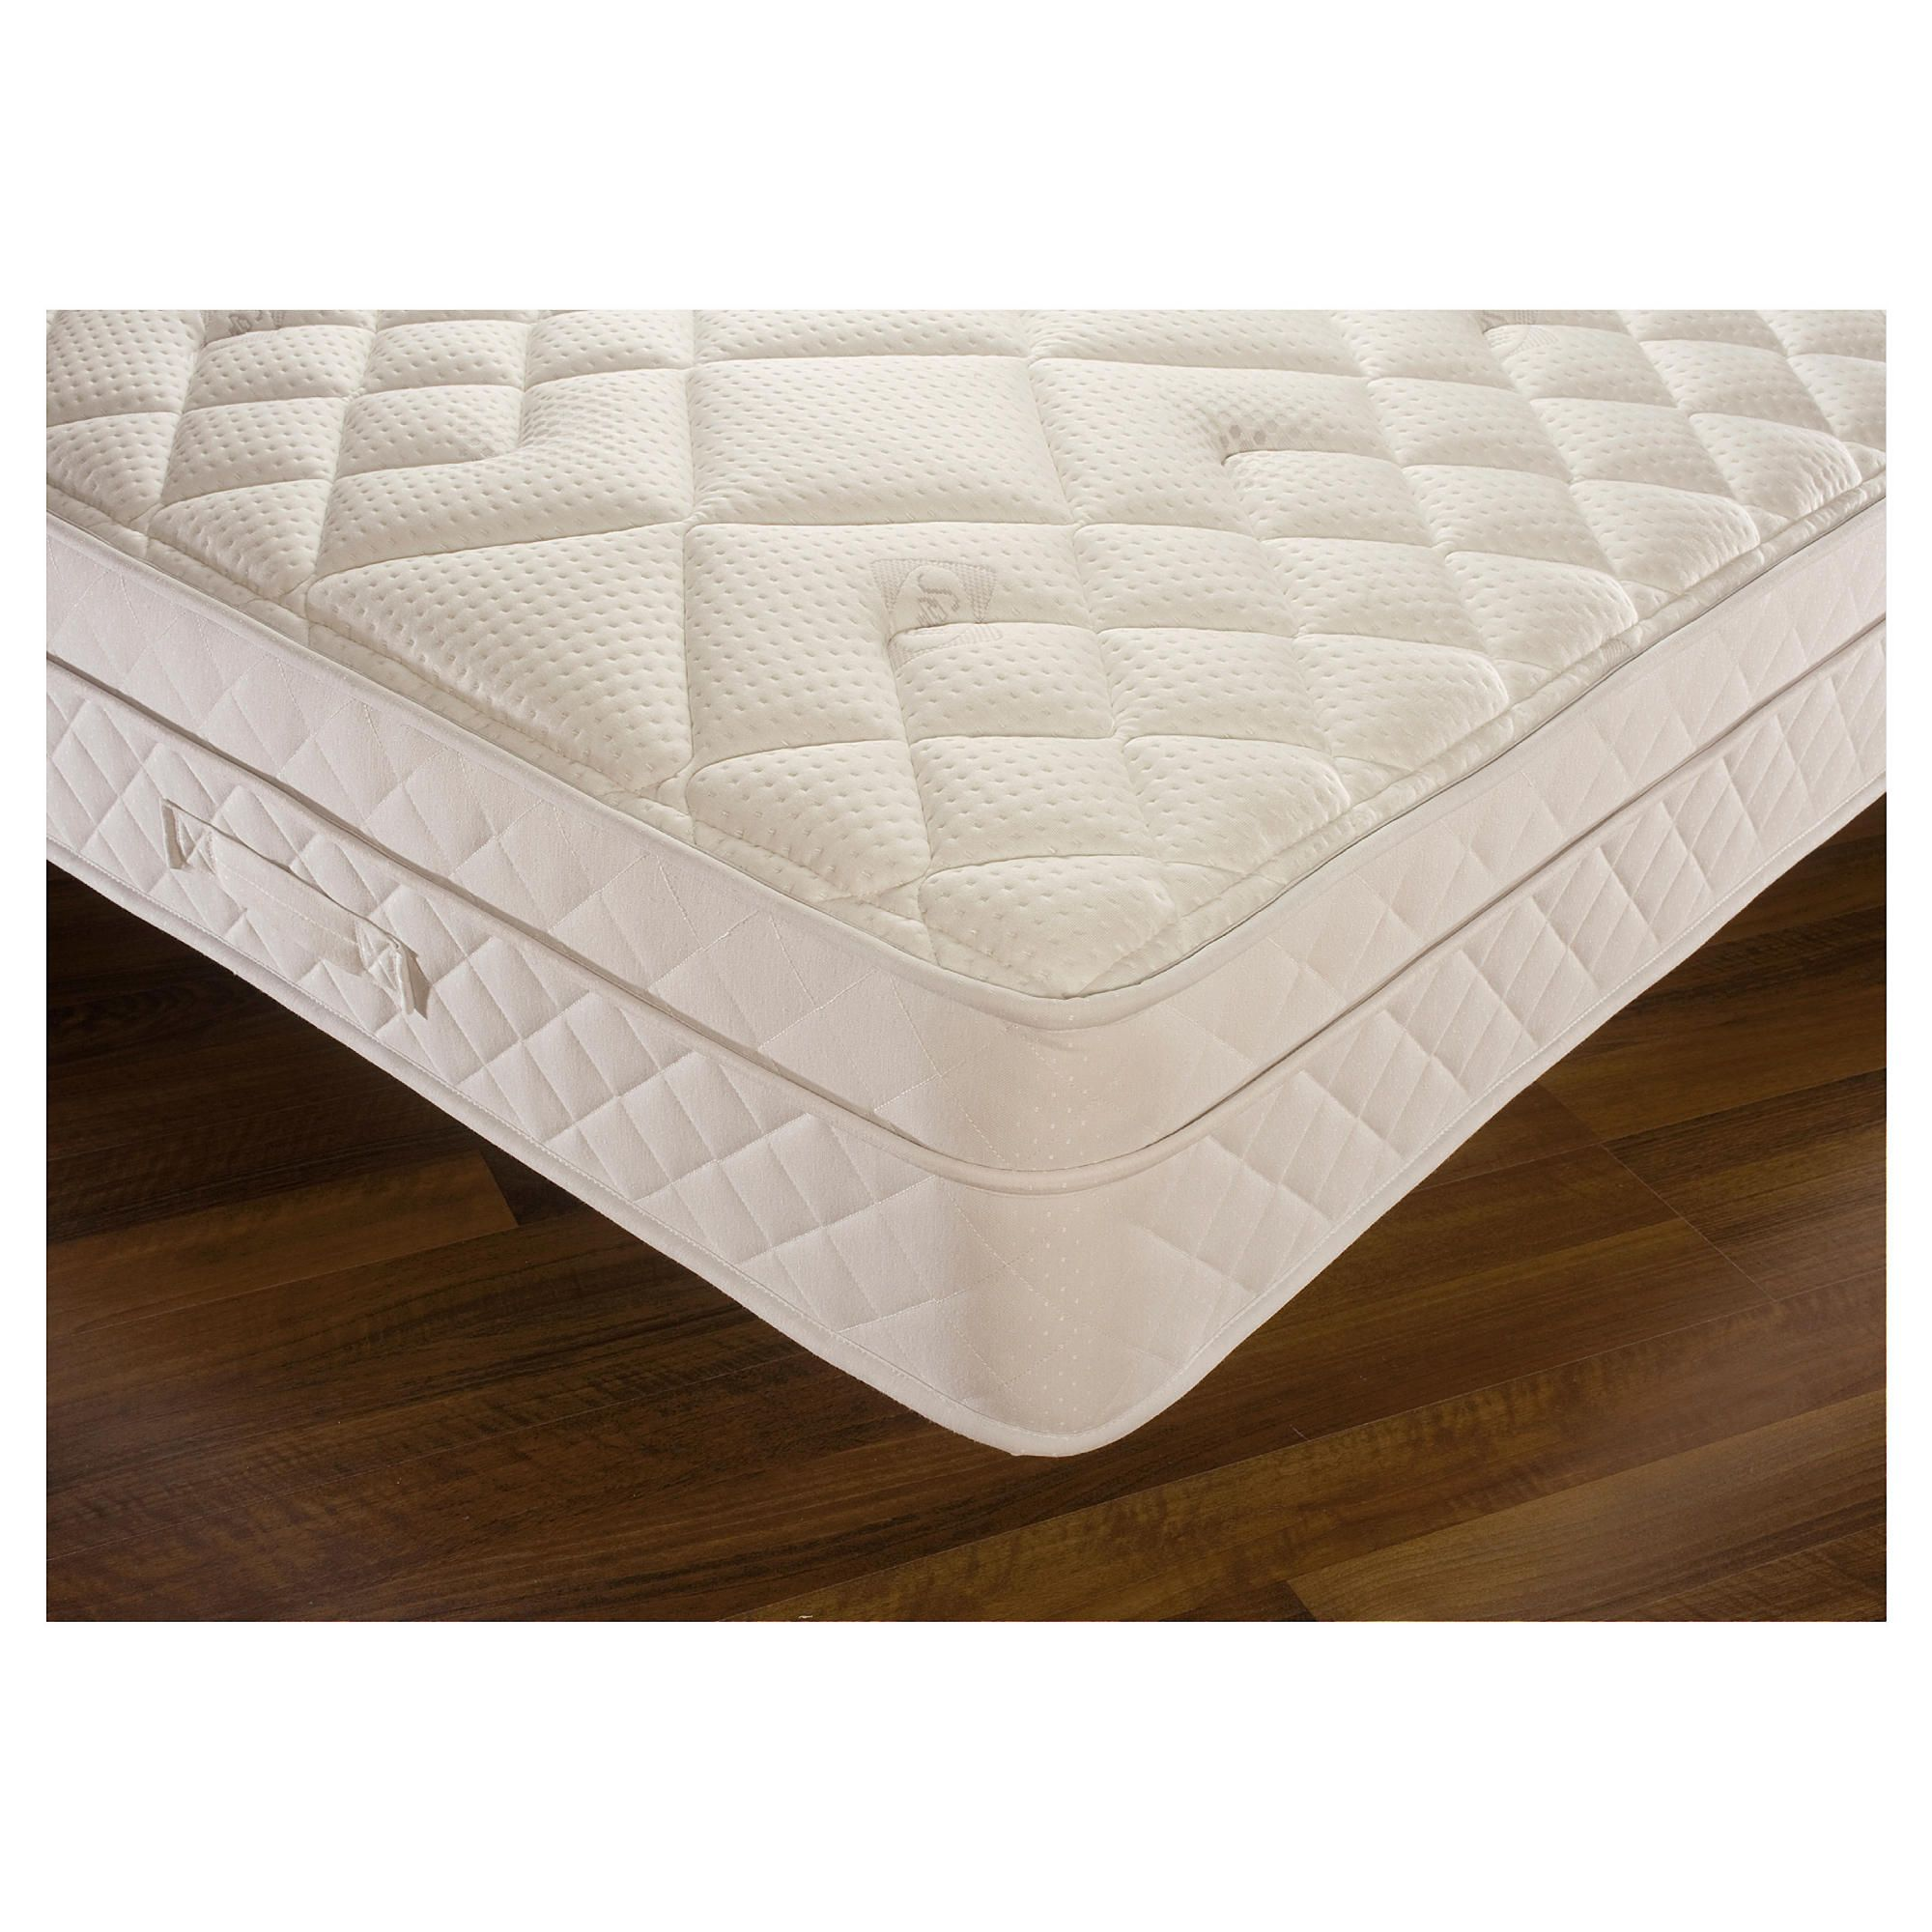 Sealy Diamond Excellence Single Mattress at Tesco Direct